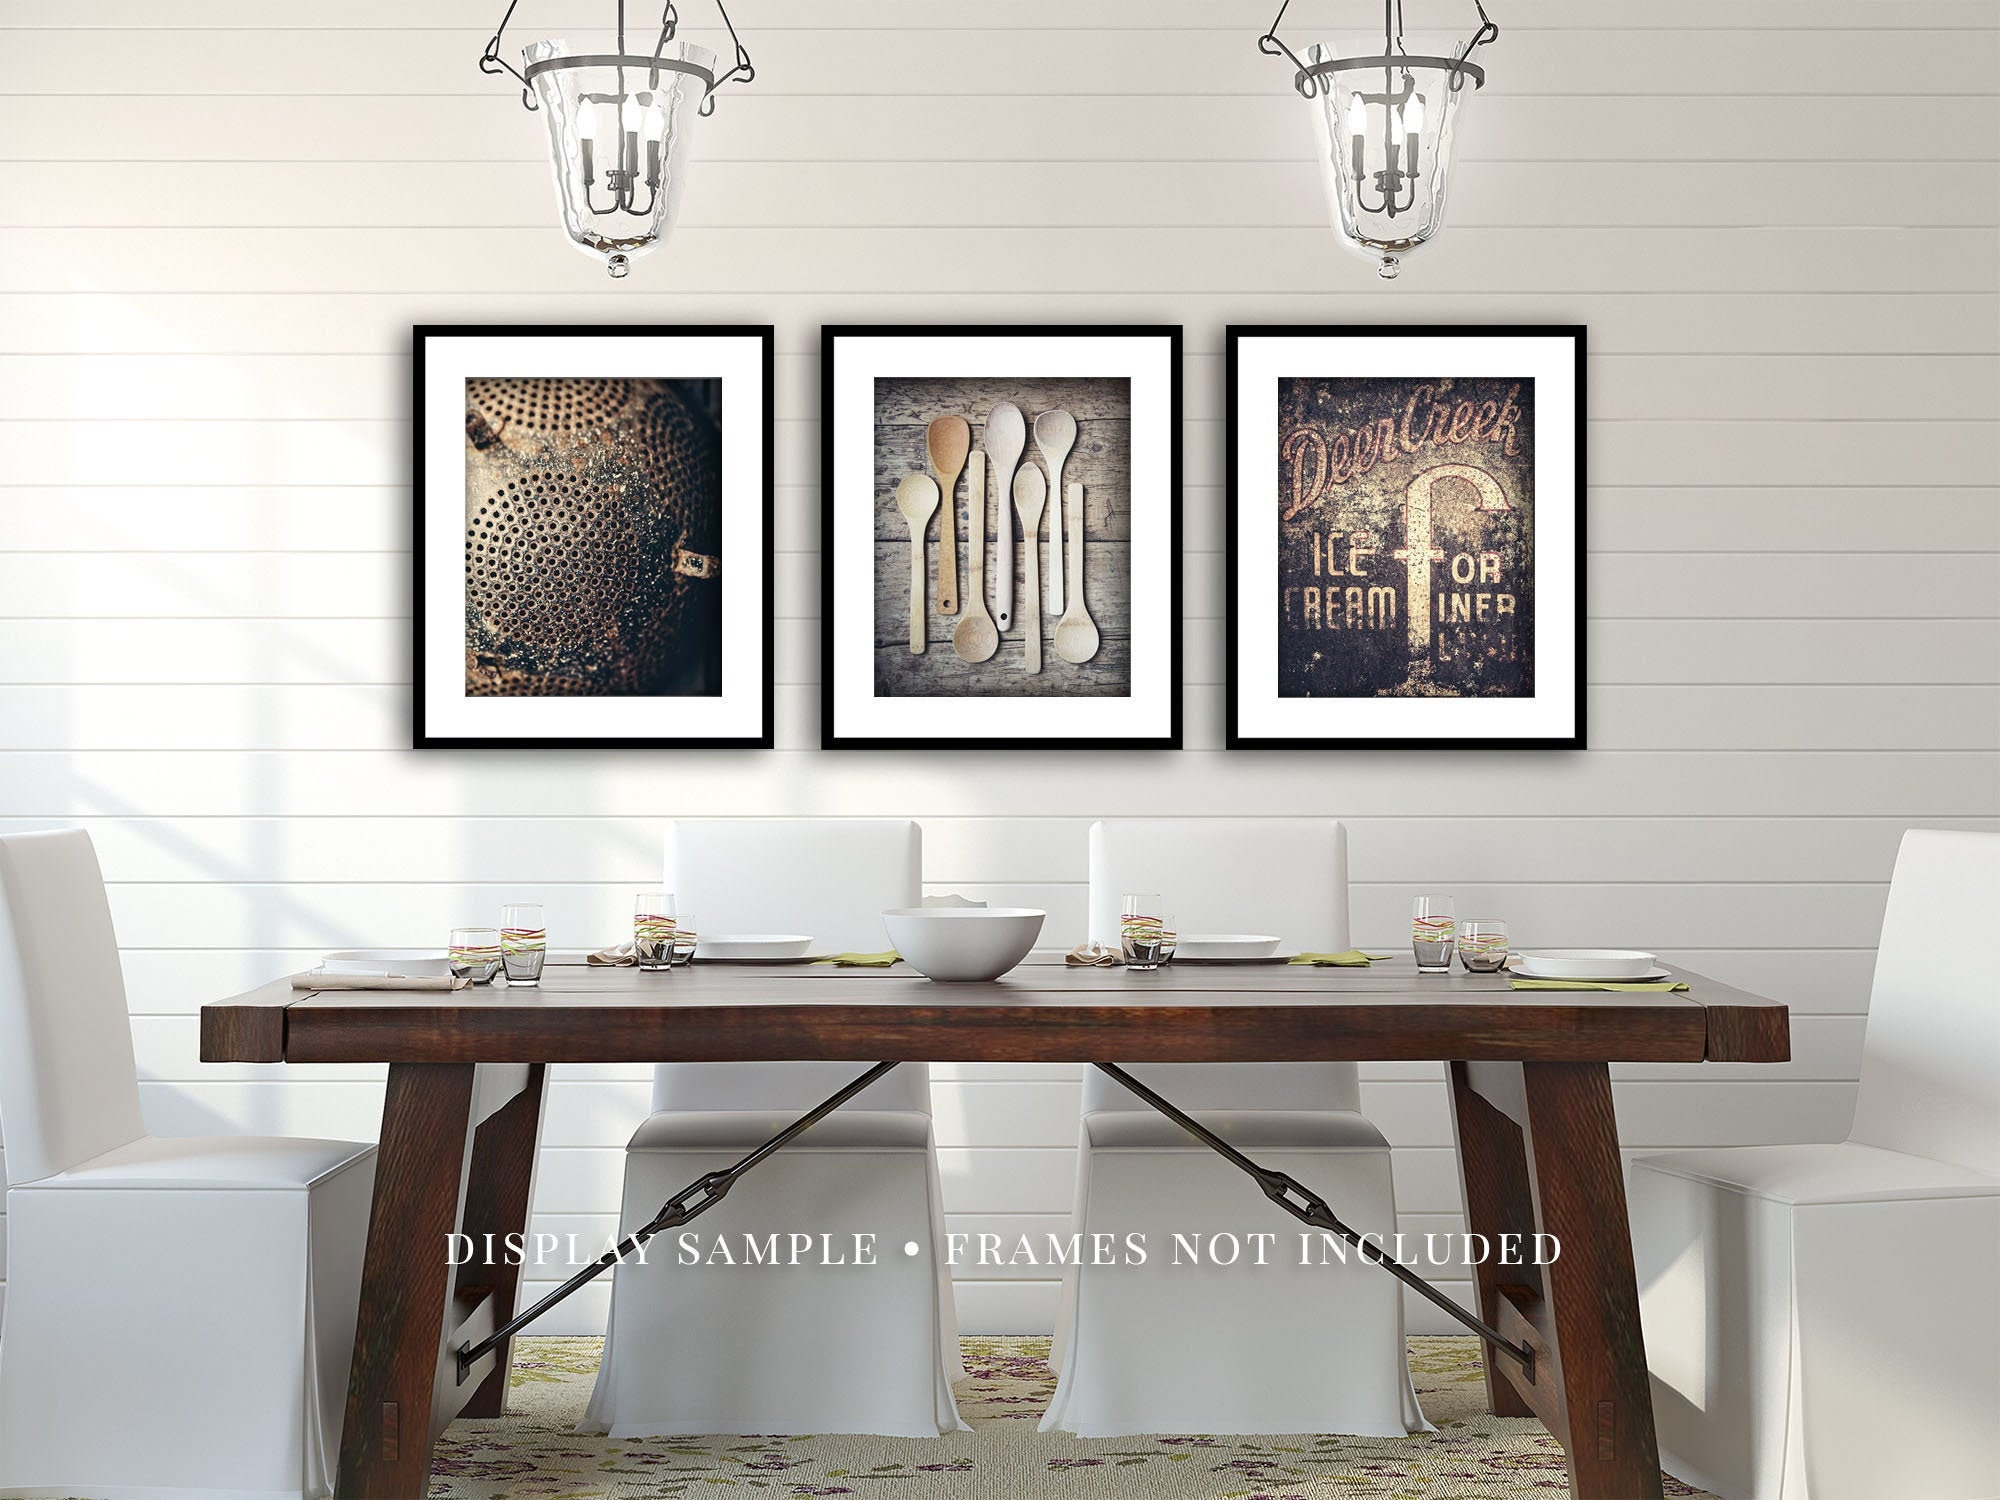 Kitchen Wall Decor Dining Room Art, Vintage Wall Art For Dining Room